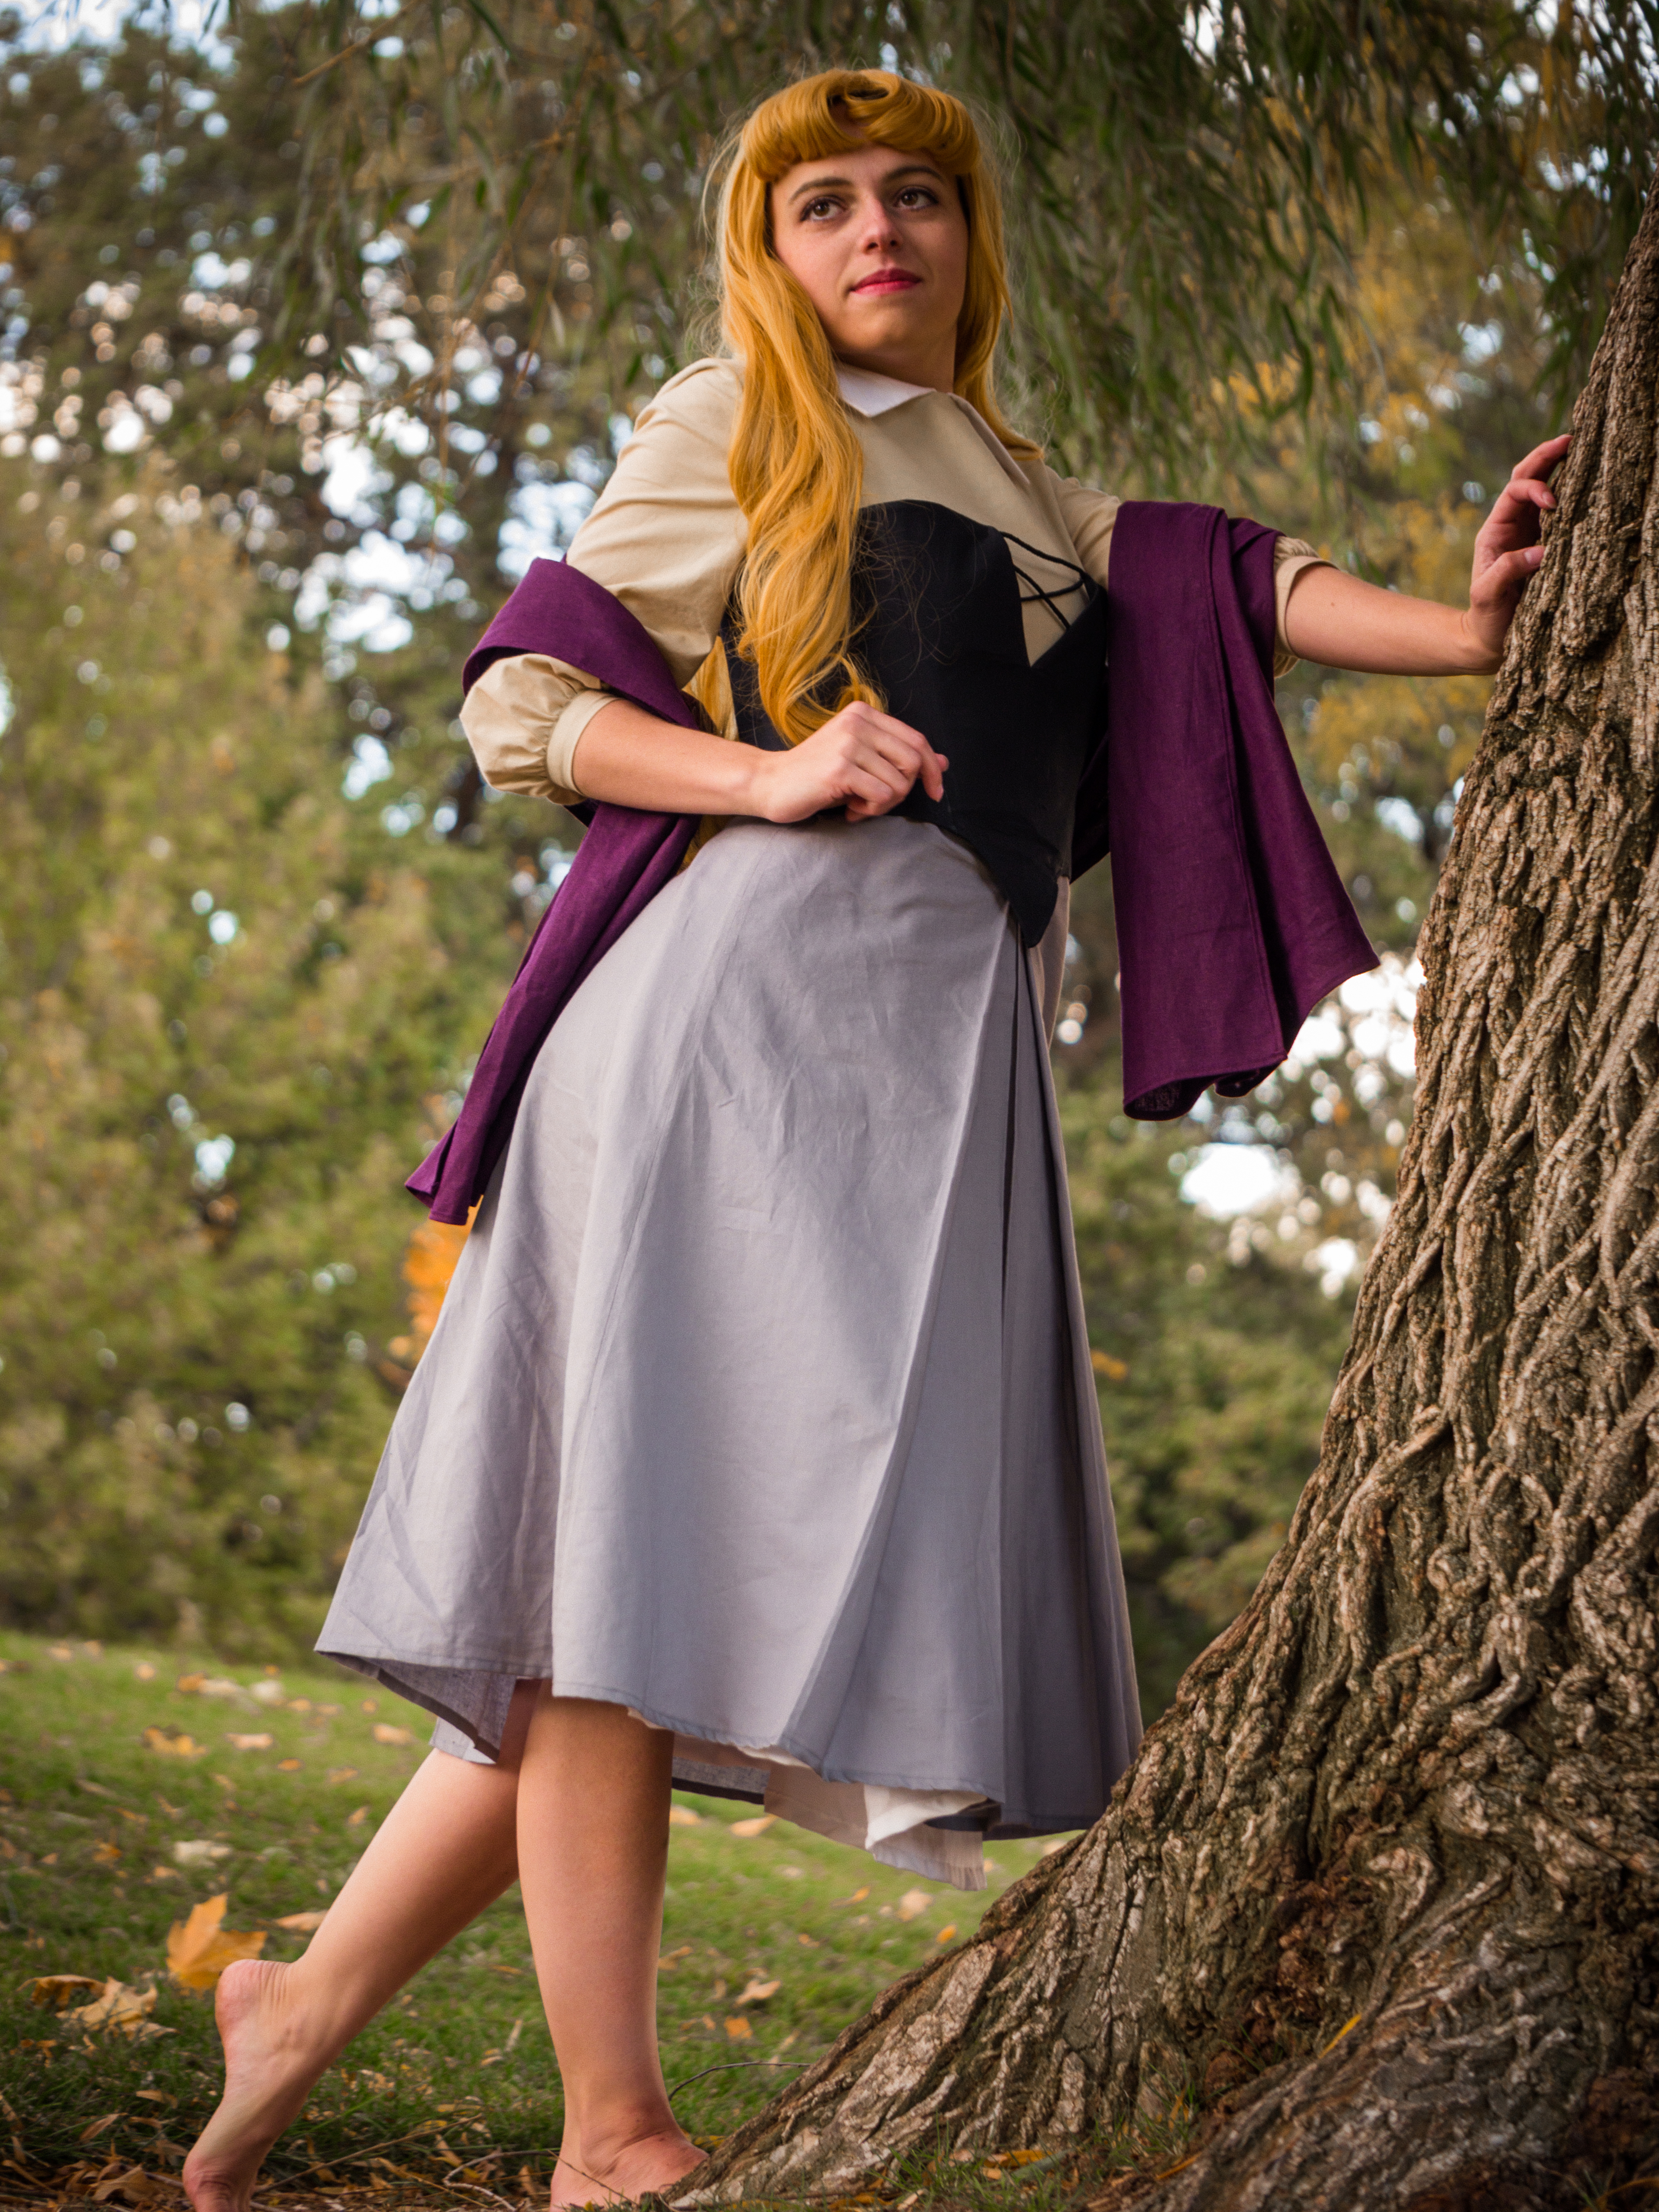 Briar Rose 2 By Lilblupenguincosplay On Deviantart